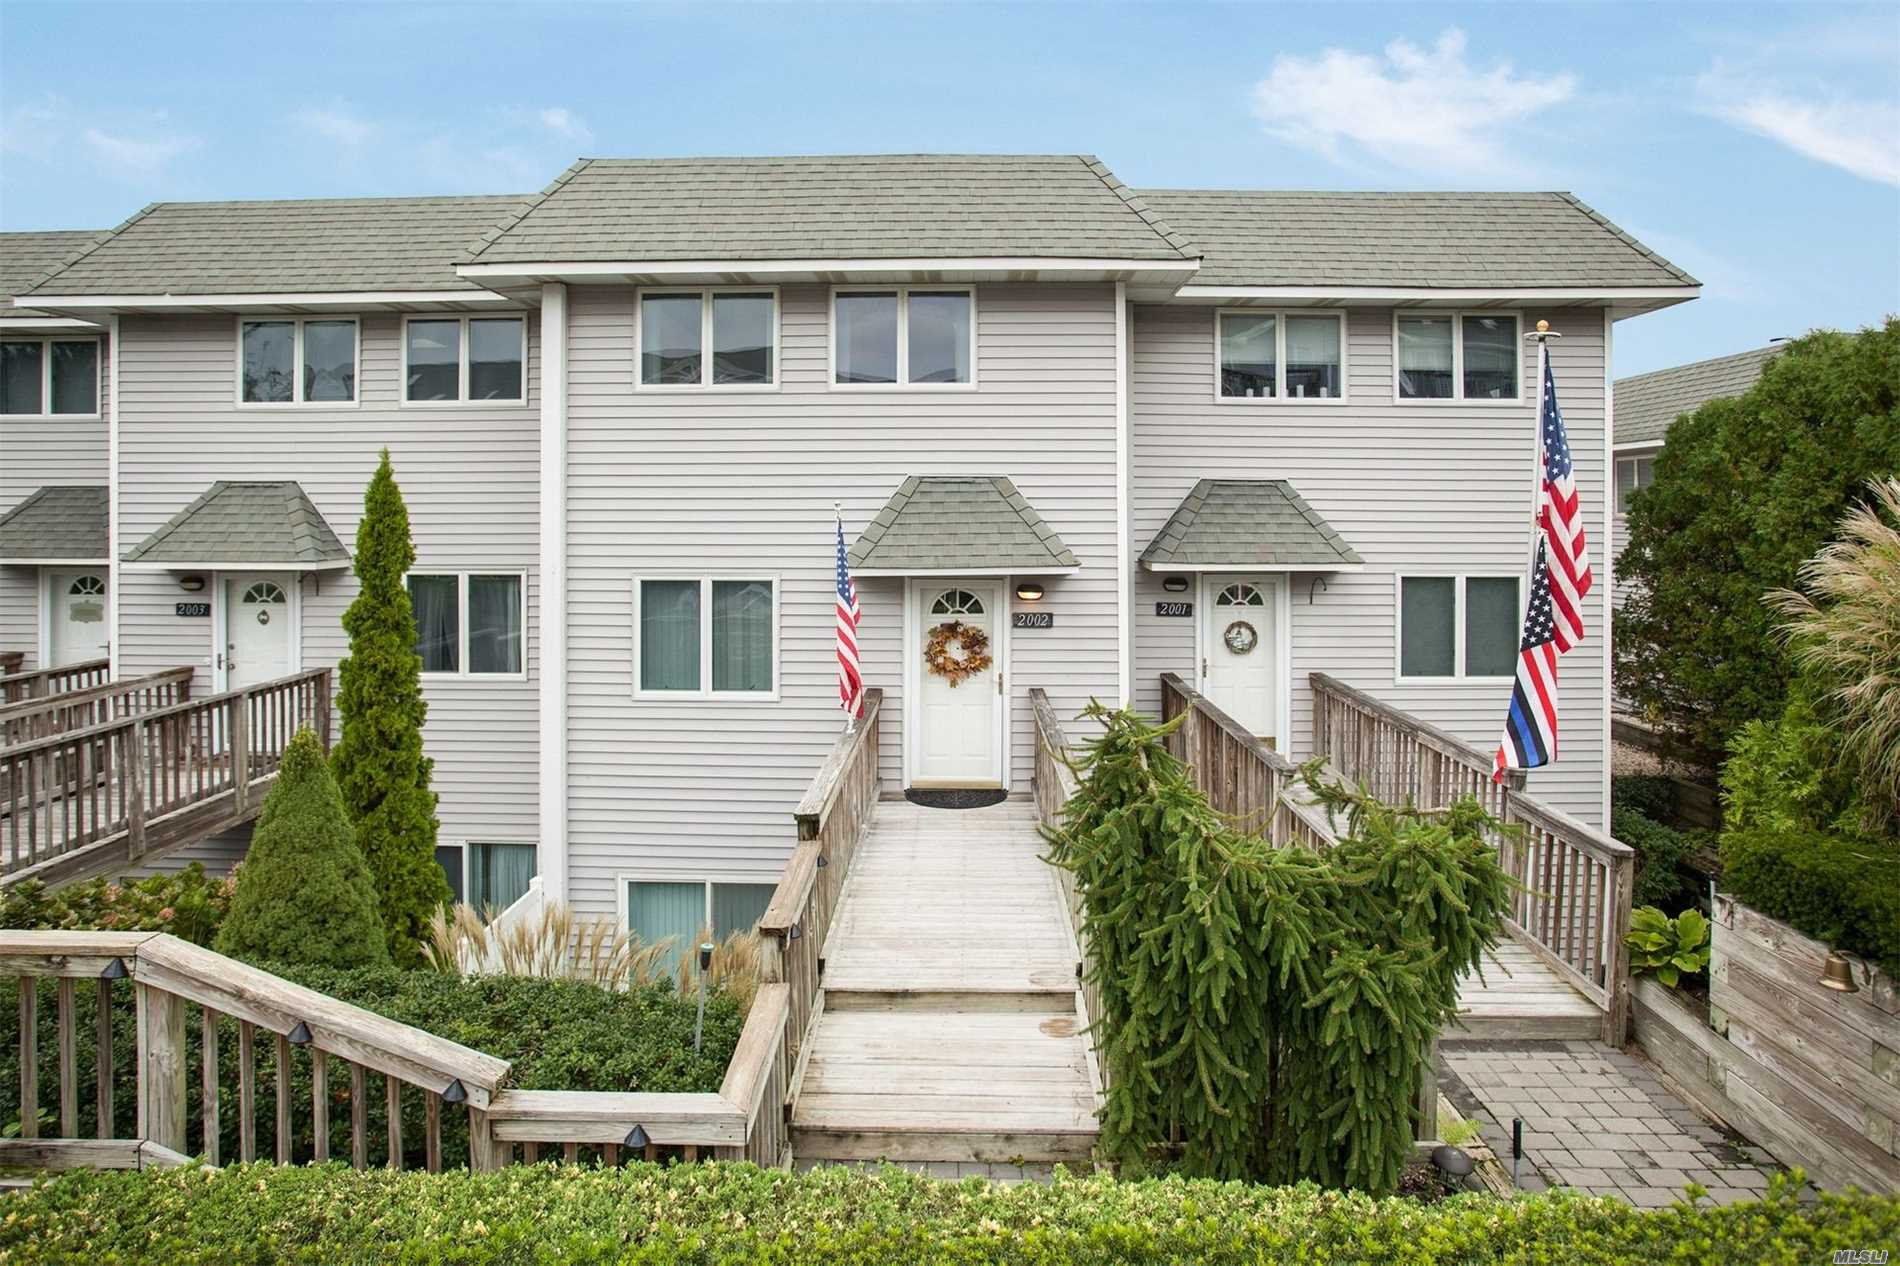 Enjoy Stunning Views Of The Long Island Sound And Connecticut From Your Own Private Balconies. This Beautiful 3 Floor, 3 Bed, 3.5 Bath Townhouse Boasts Anderson Windows, Gas Fireplace, Ample Closets And Storage, 1.5 Car Garage, Along With Many Amenities. Amenities Include Pool, Tennis Courts, Clubhouse And Private Beach!  Convenient To All North Fork Wineries, Farm Stands And Shopping.